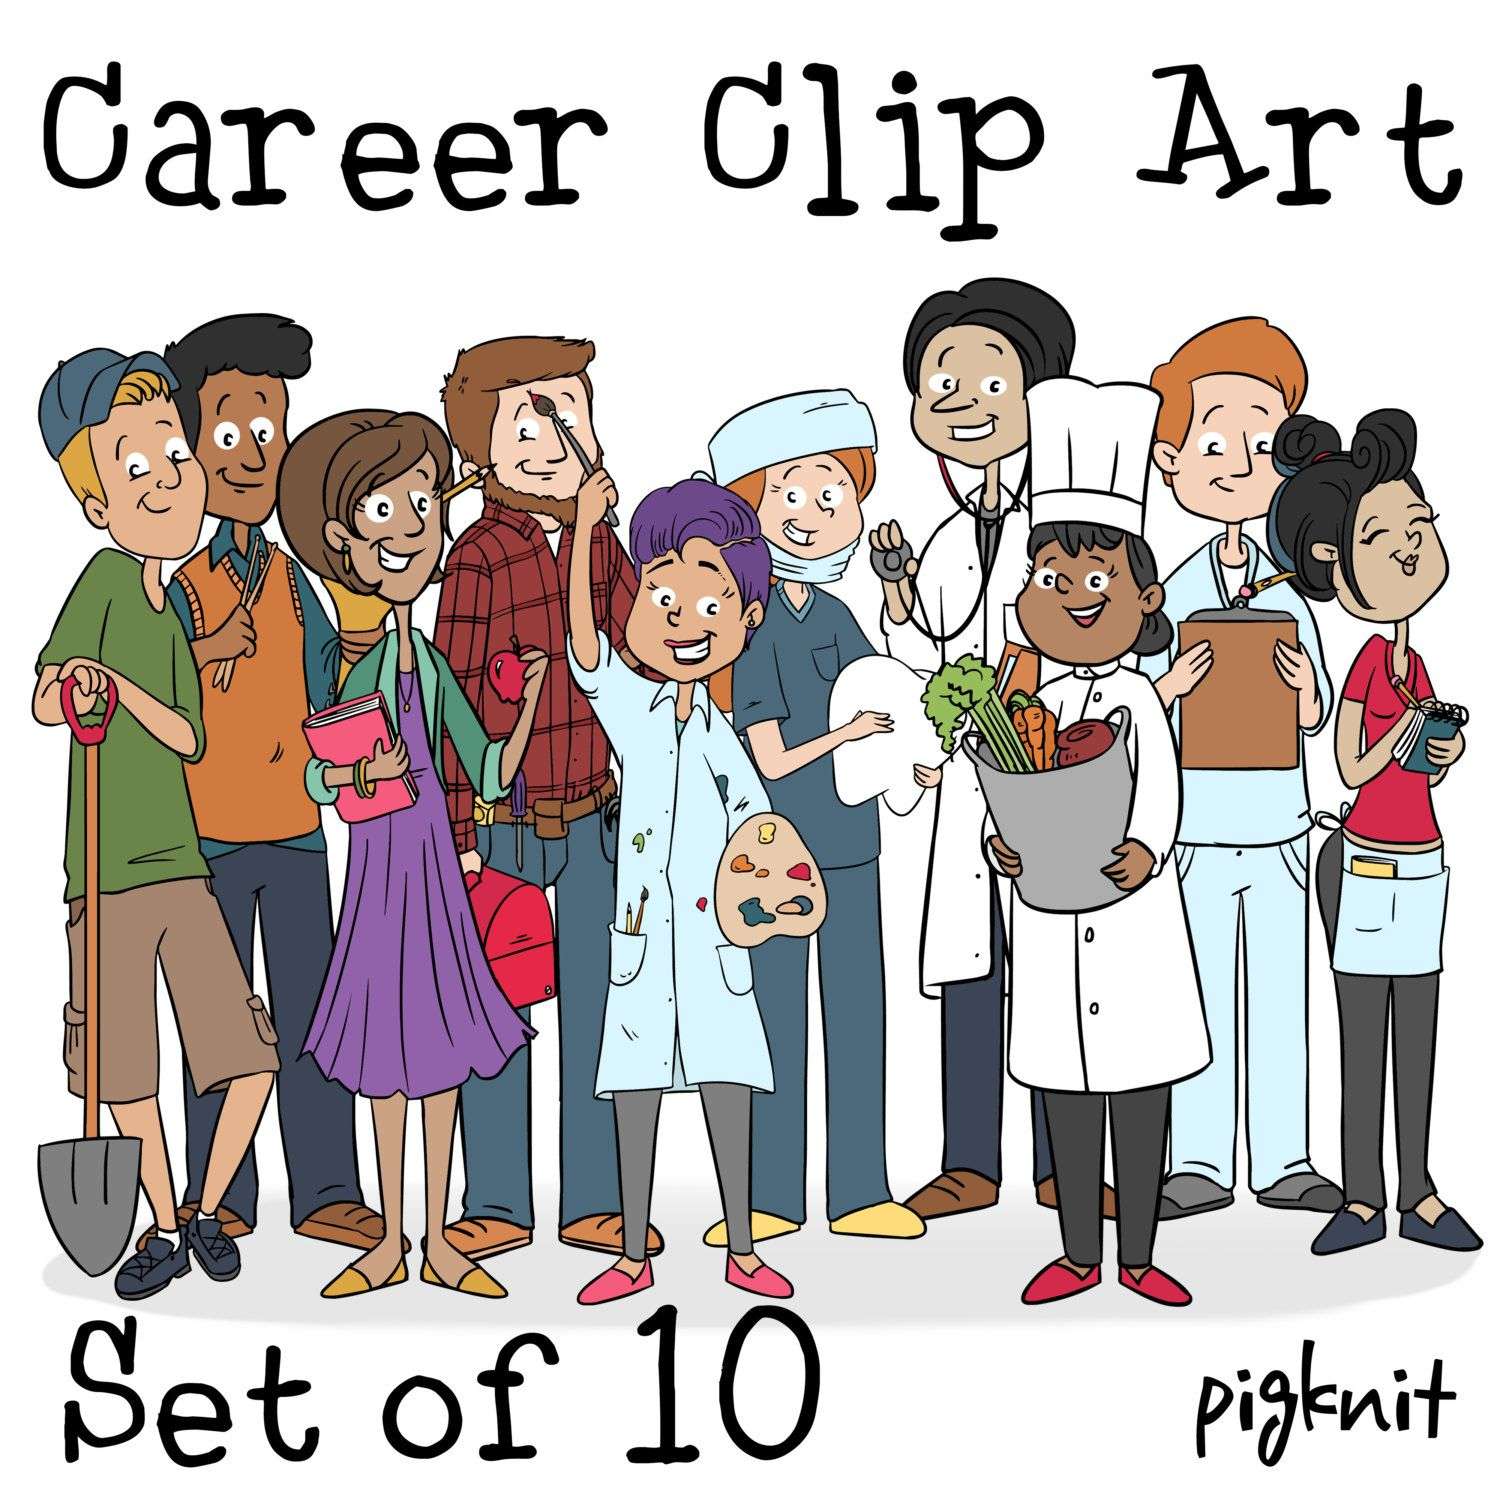 Careers clip art vector. Career clipart